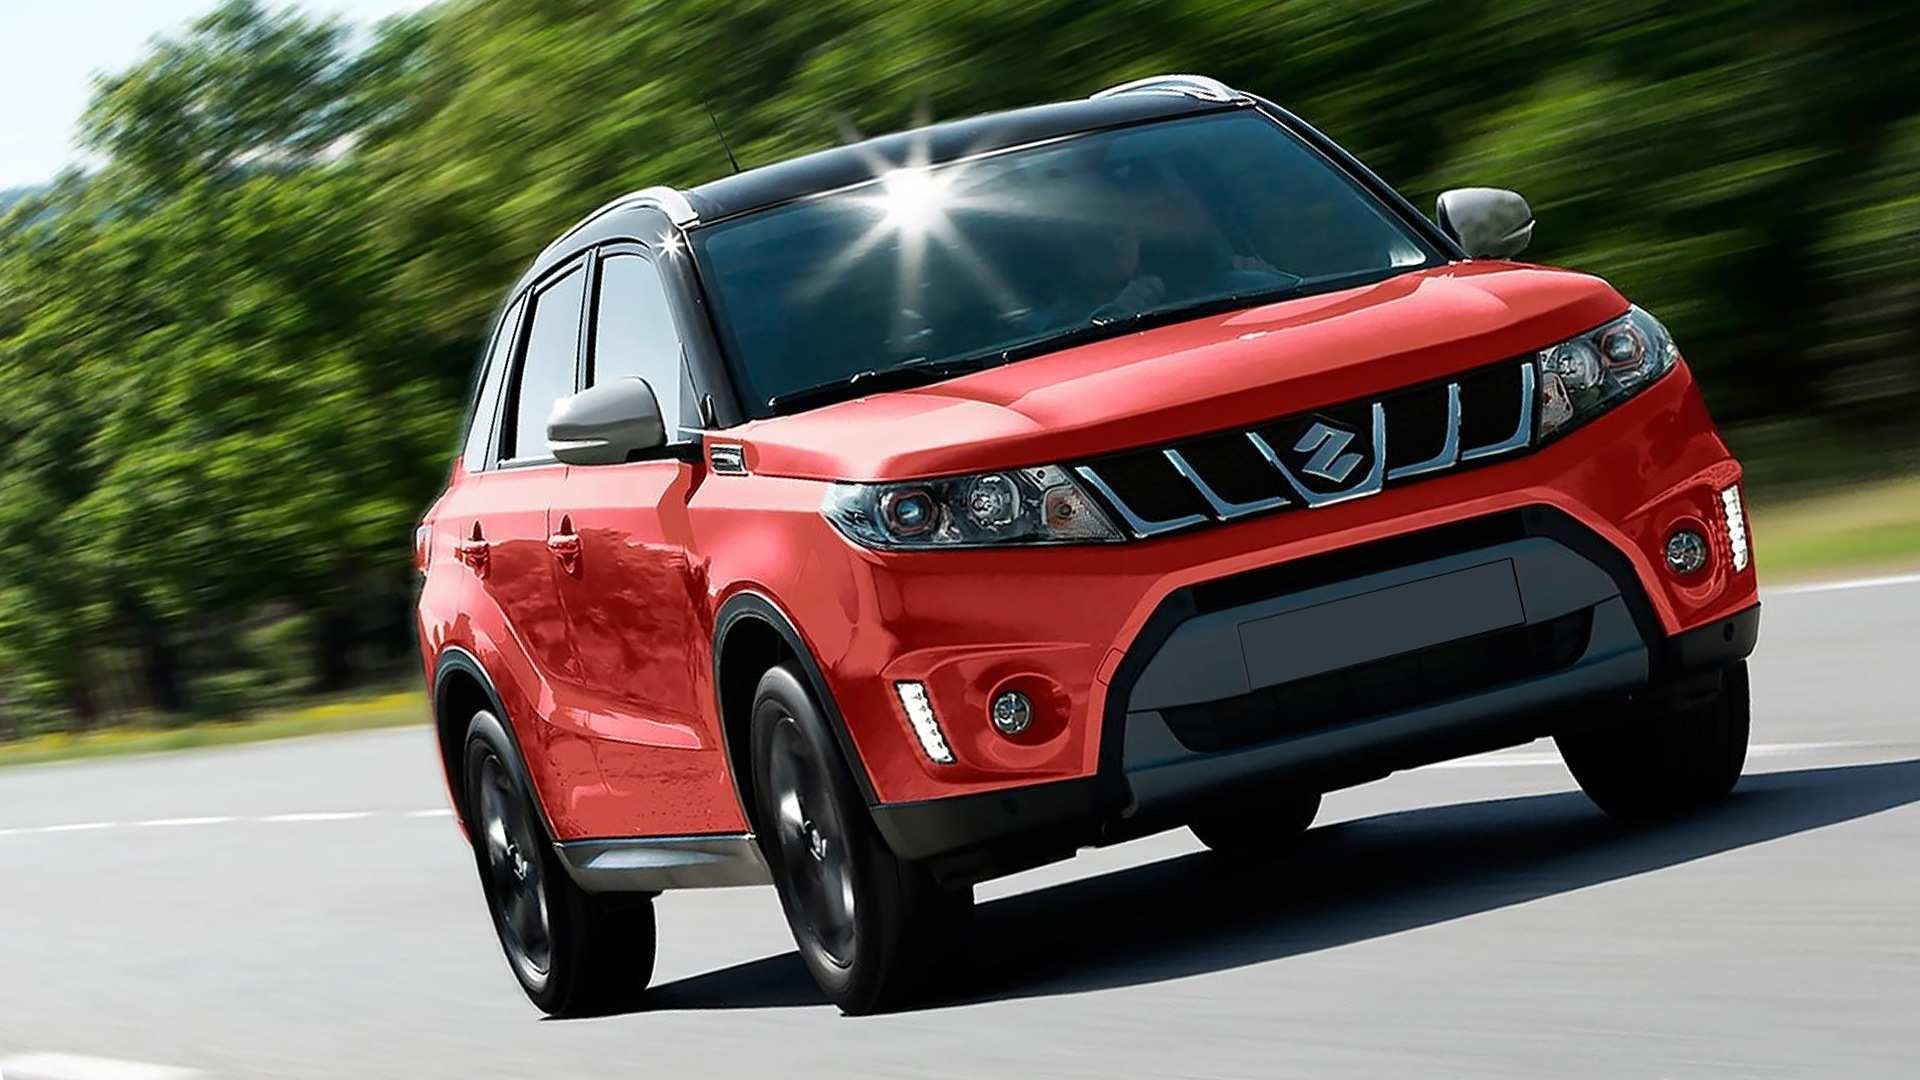 25 New 2019 Suzuki Grand Vitara Exterior And Interior